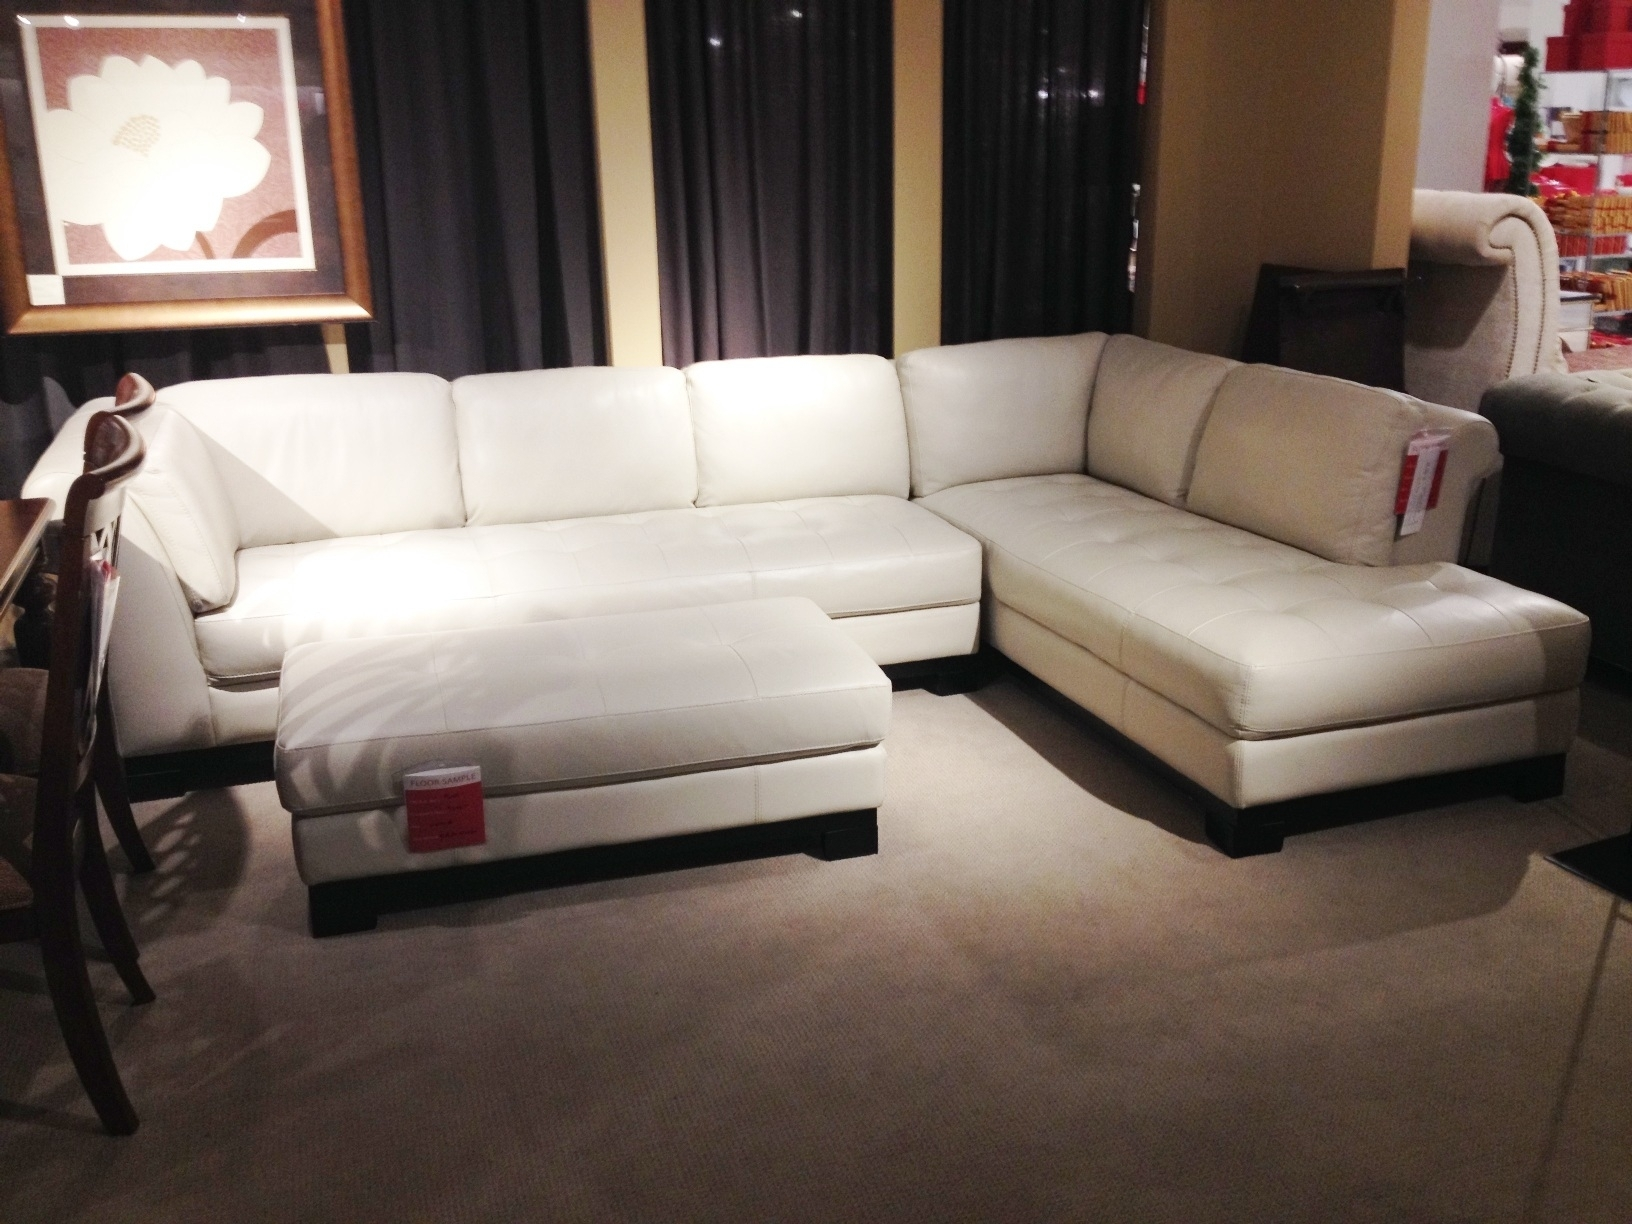 White Leather Sectional Sofa Macy's • Leather Sofa Pertaining To Macys Sectional Sofas (View 5 of 10)